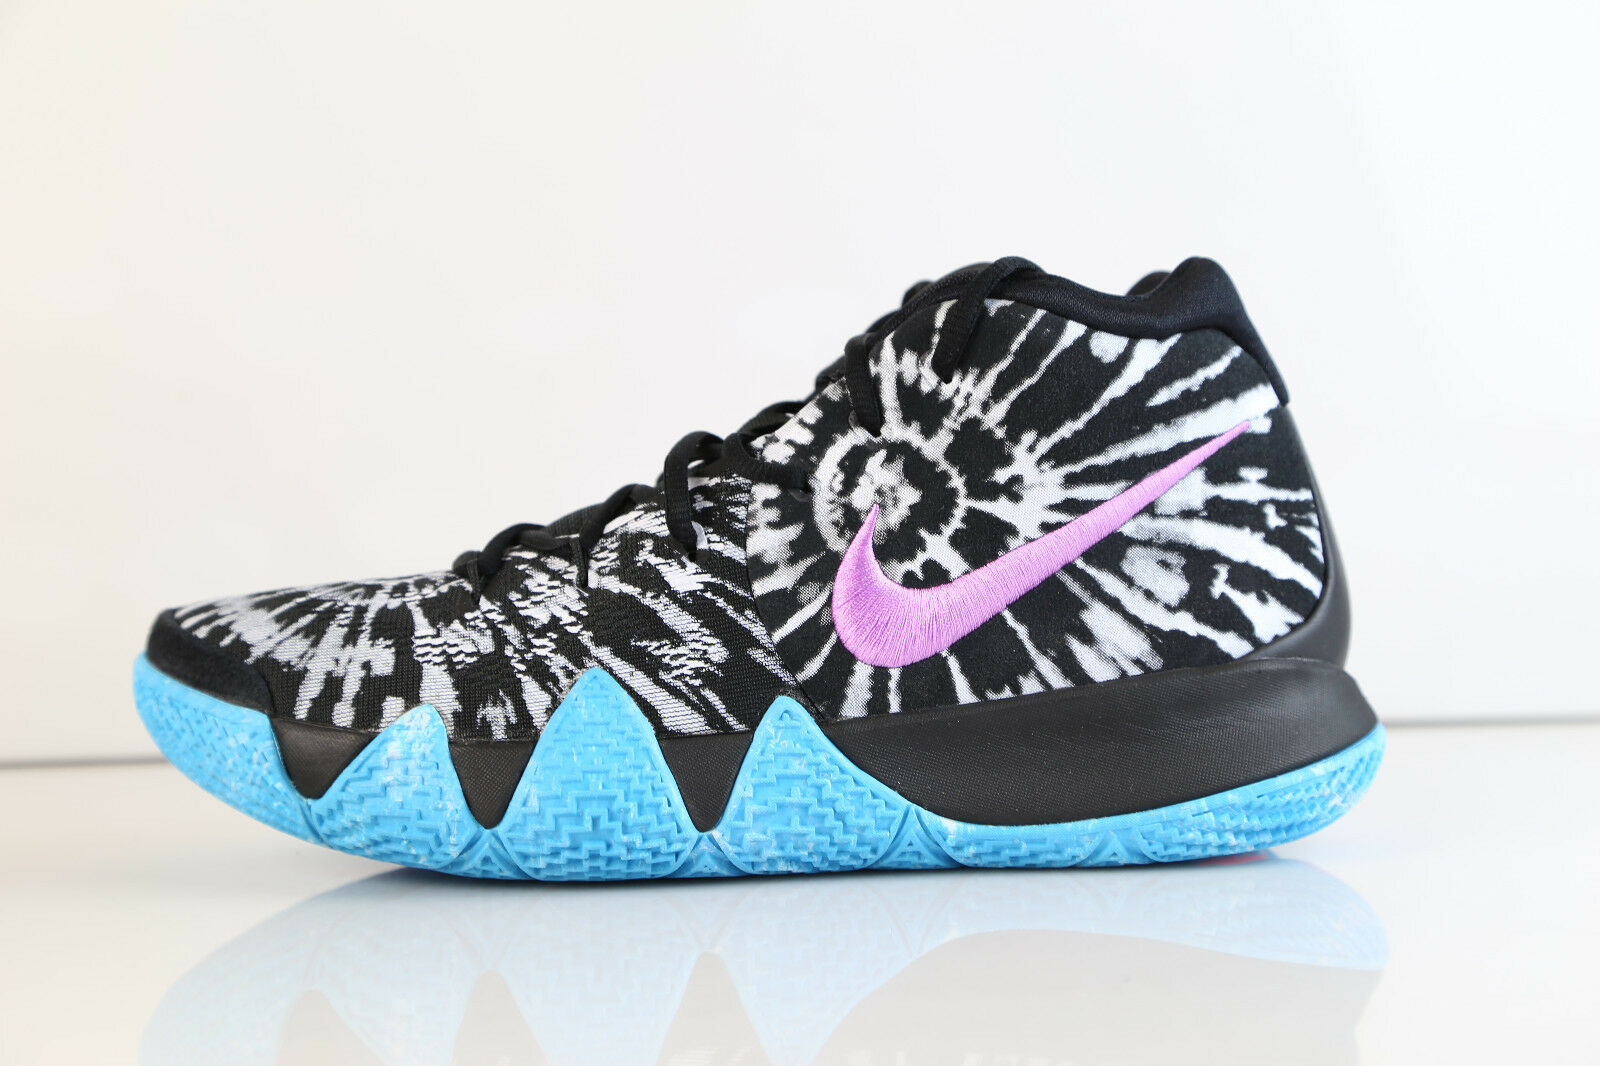 Nike Kyrie 4 AS All-Star Black White AQ8623-001 9.5-14 flyknit zoom  3 2